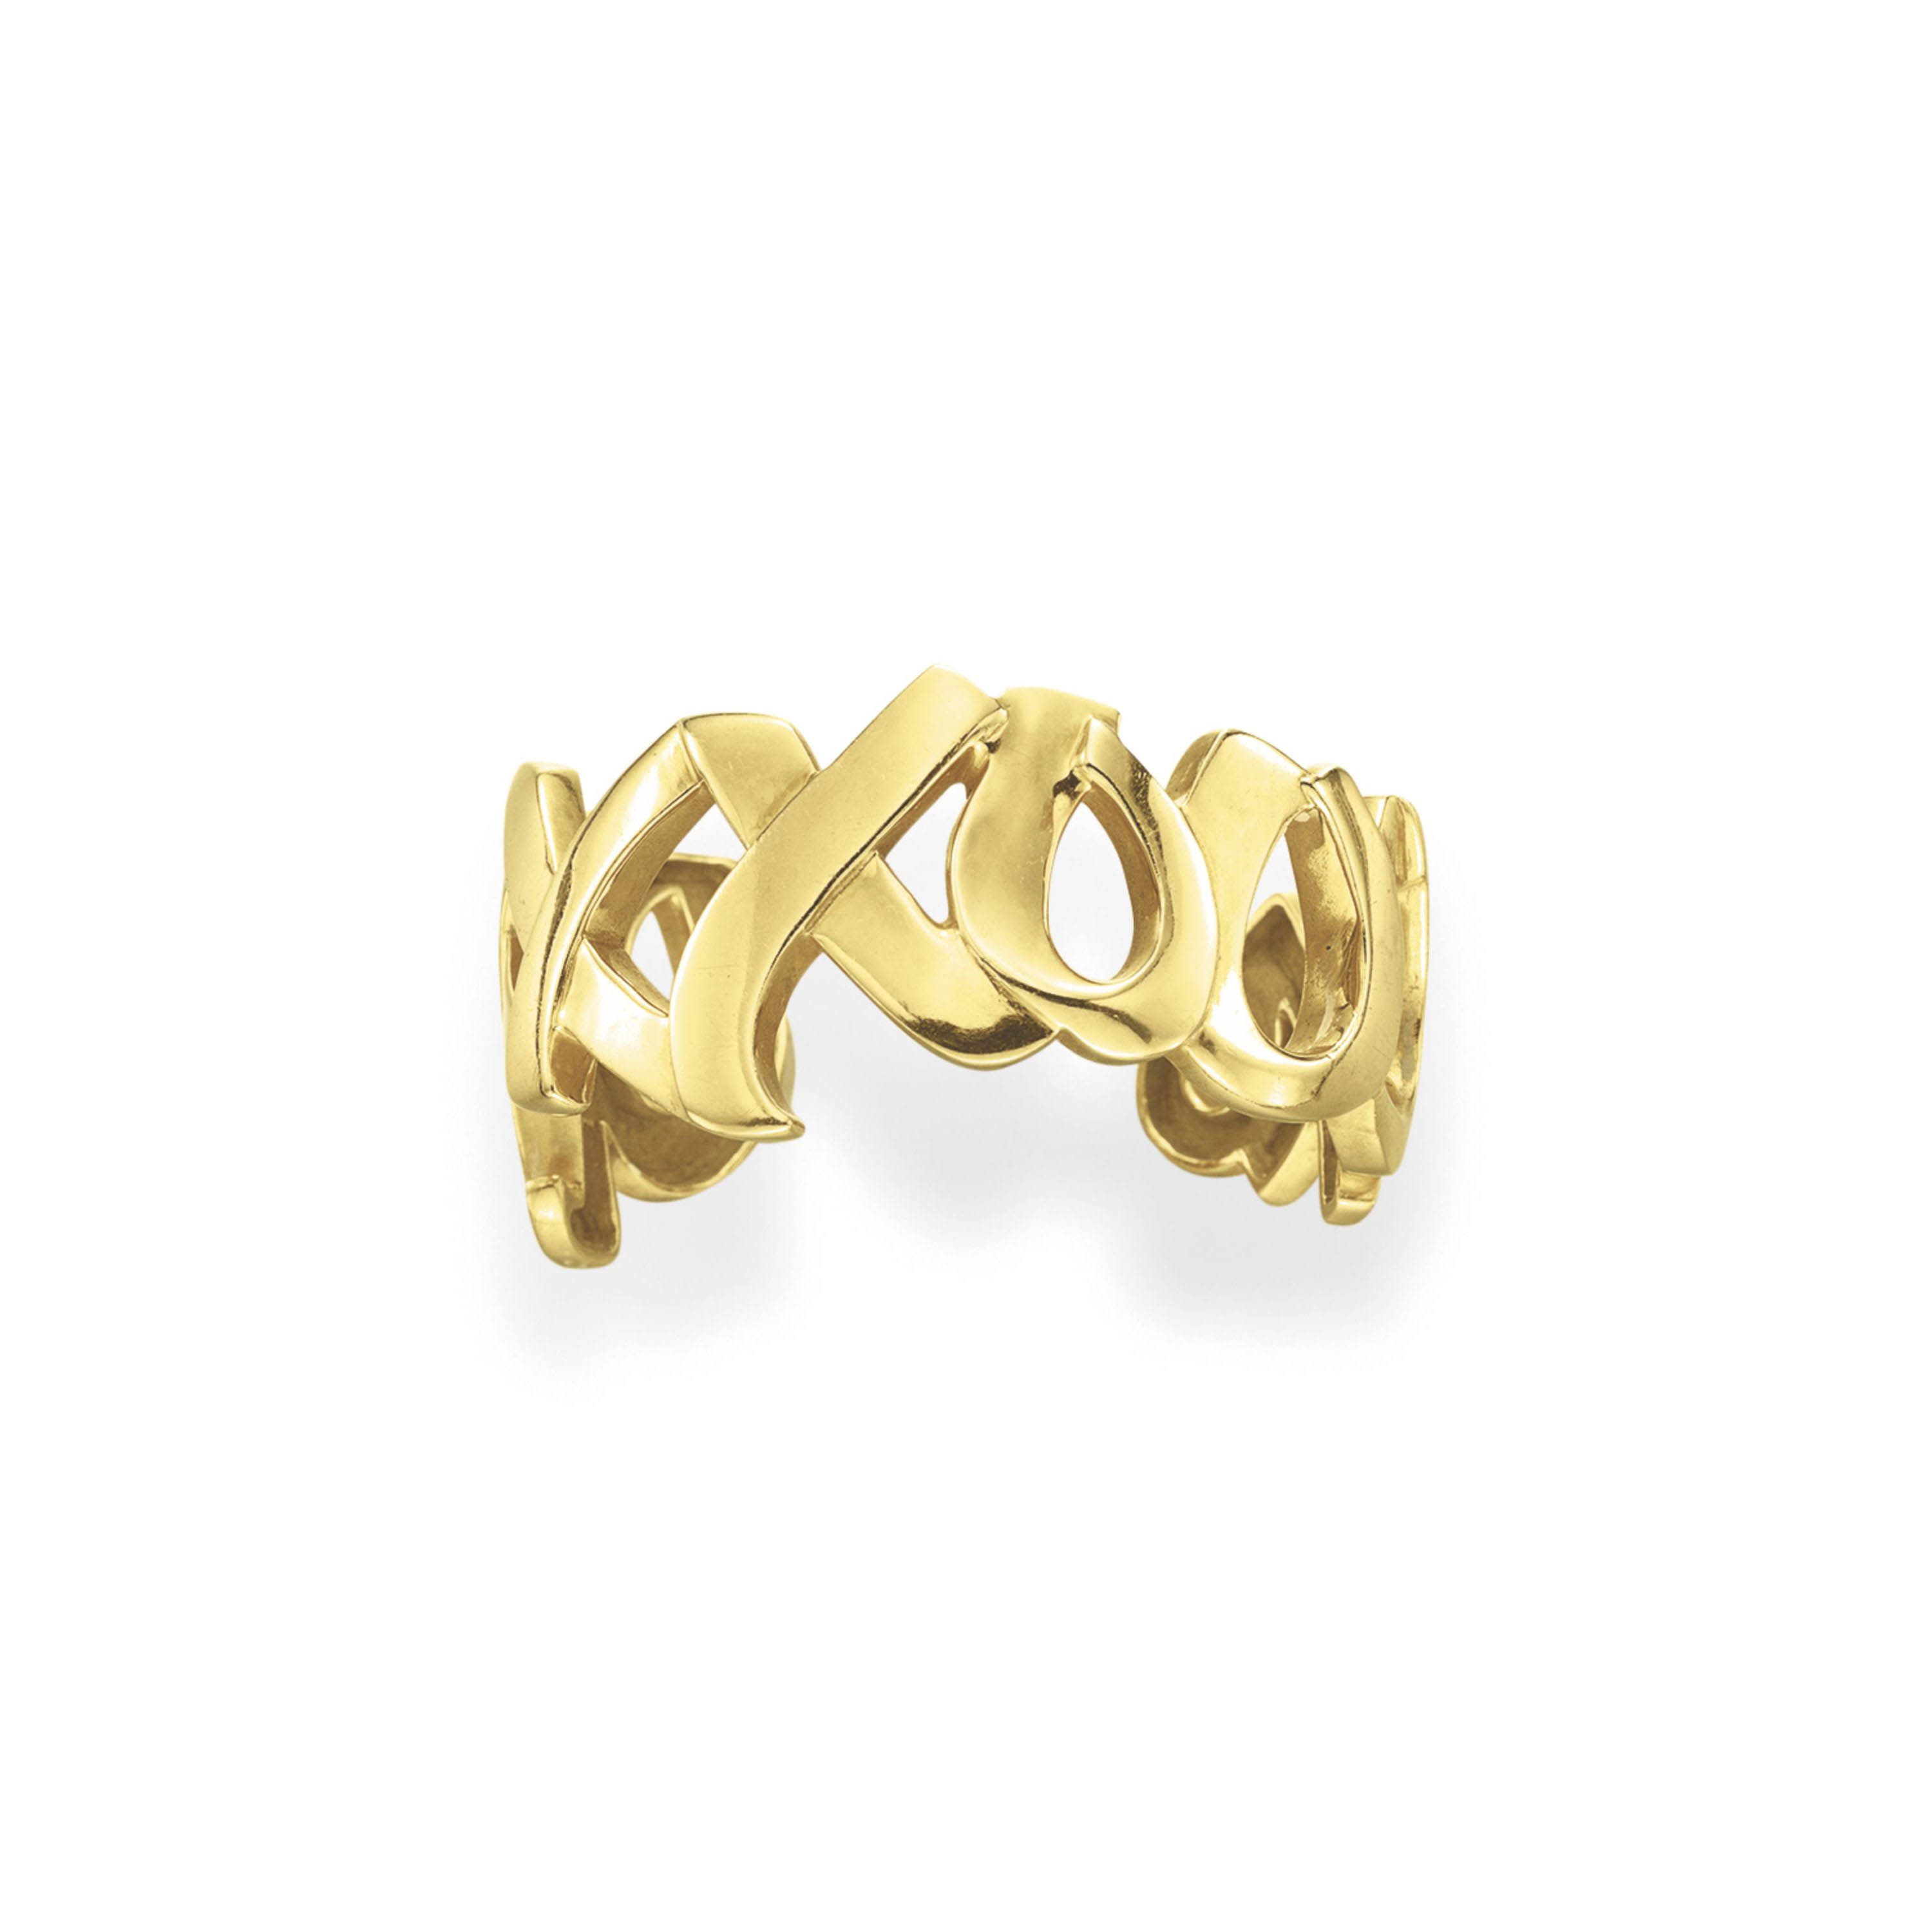 A GOLD CUFF BRACELET, BY PALOMA PICASSO, TIFFANY & CO.